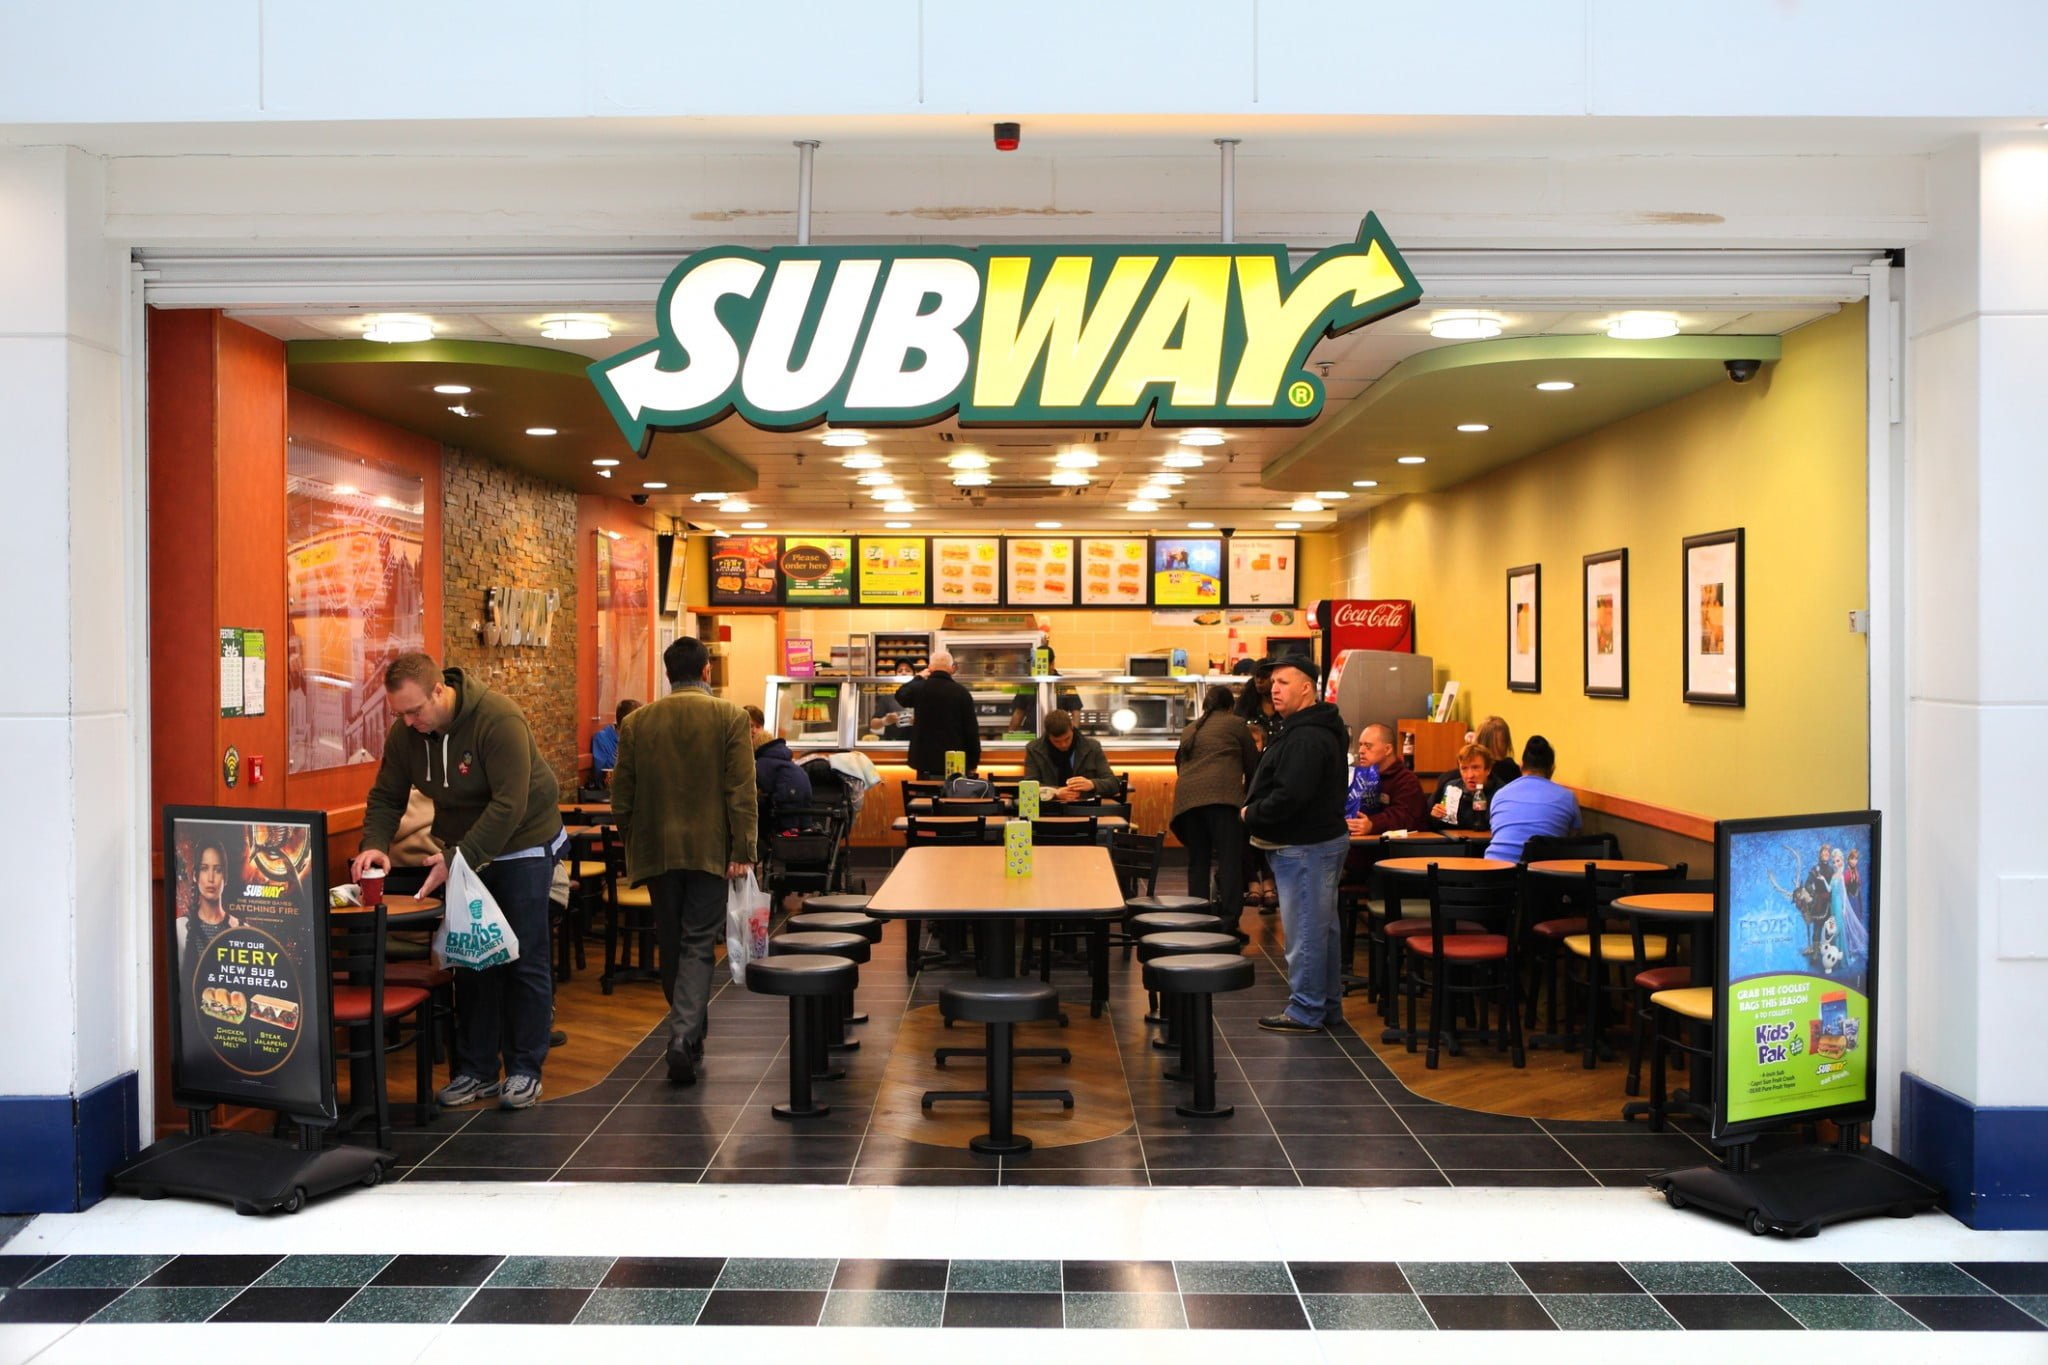 subway restaurants The founder of 'subway' fred deluca started off in the food industry by opening a sandwich shop at the age of 17 in order to raise funds for paying his college fees.